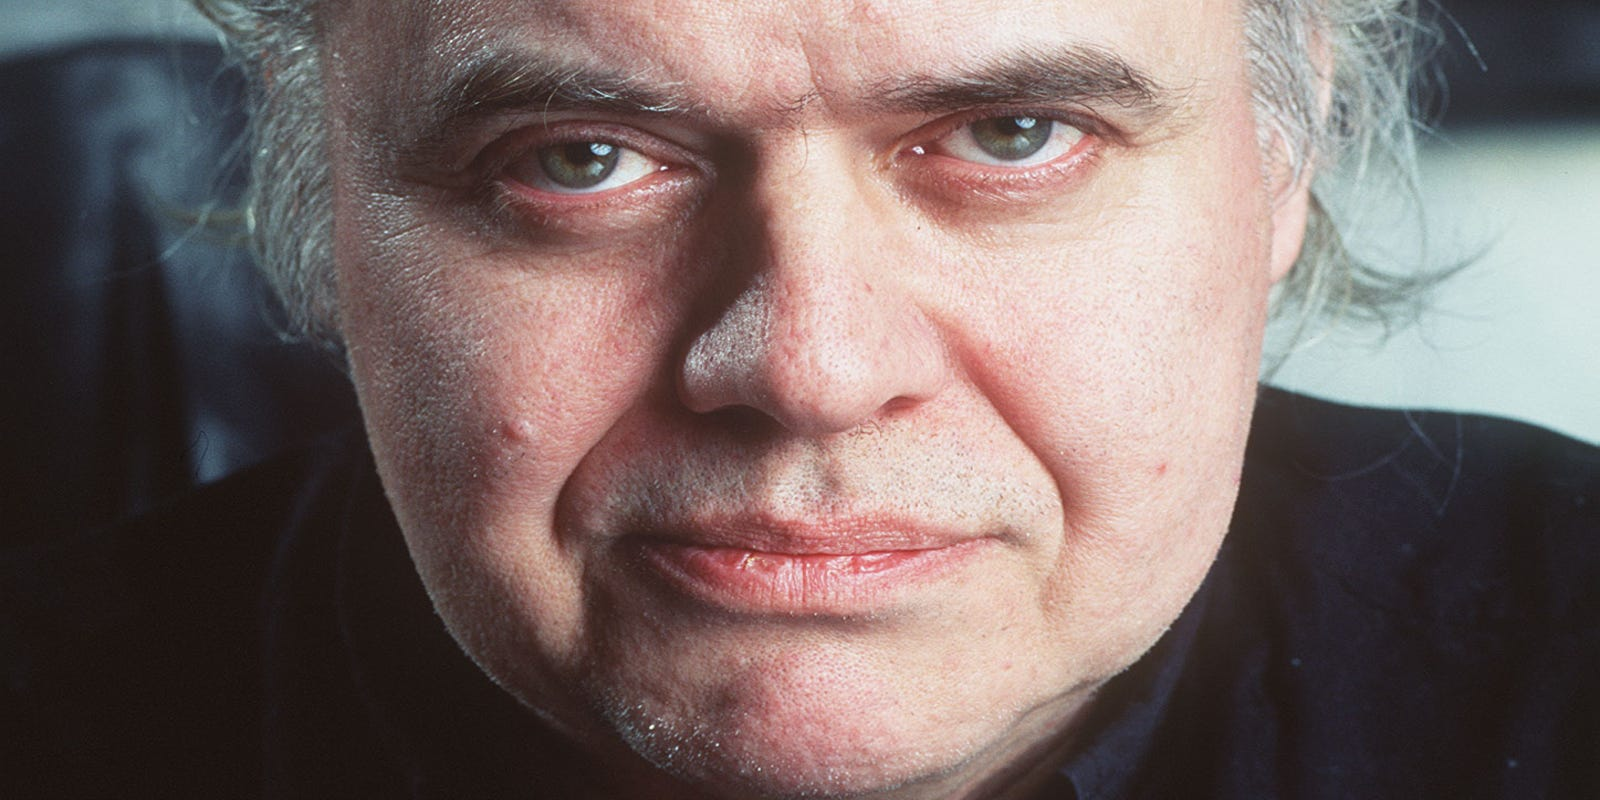 Alien Artist Hr Giger Dies At 74 Radio Wave Diagram Http Hollywoodbollywood Co In Hoadmin